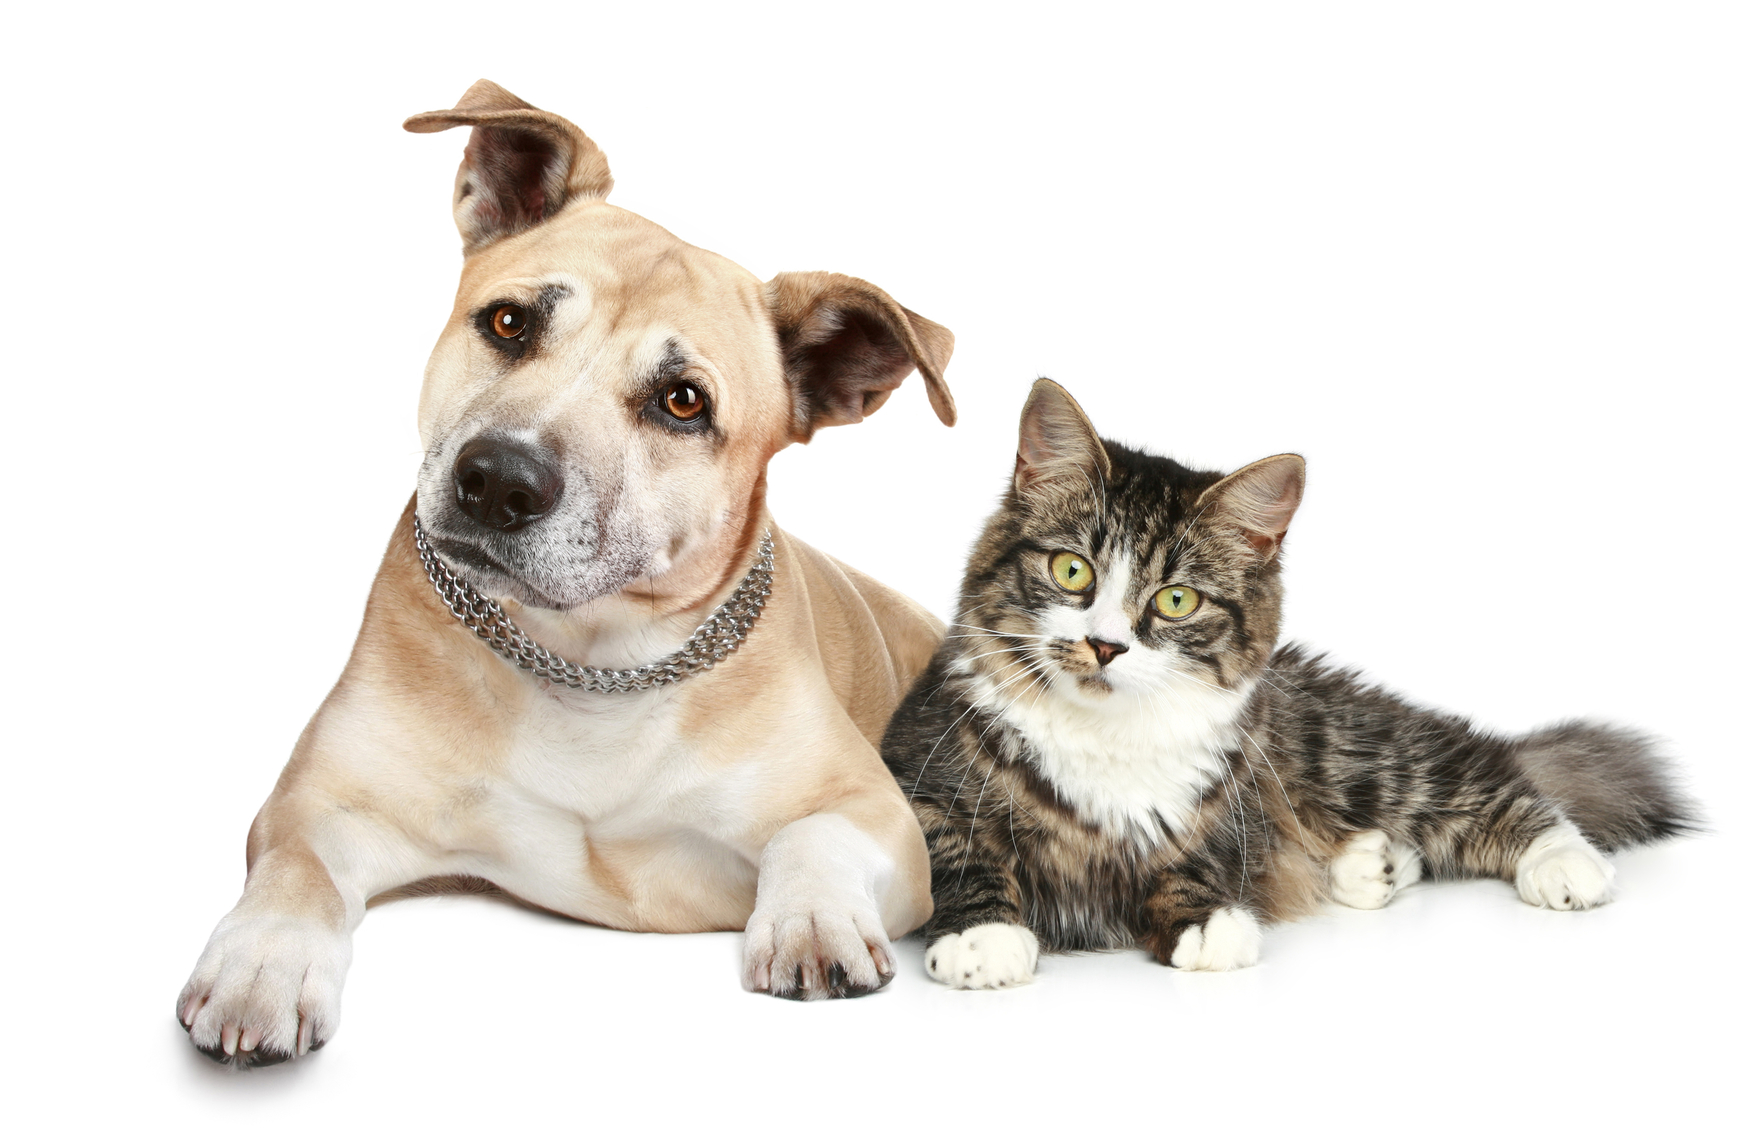 Cat And Dog PNG No Background - 161586